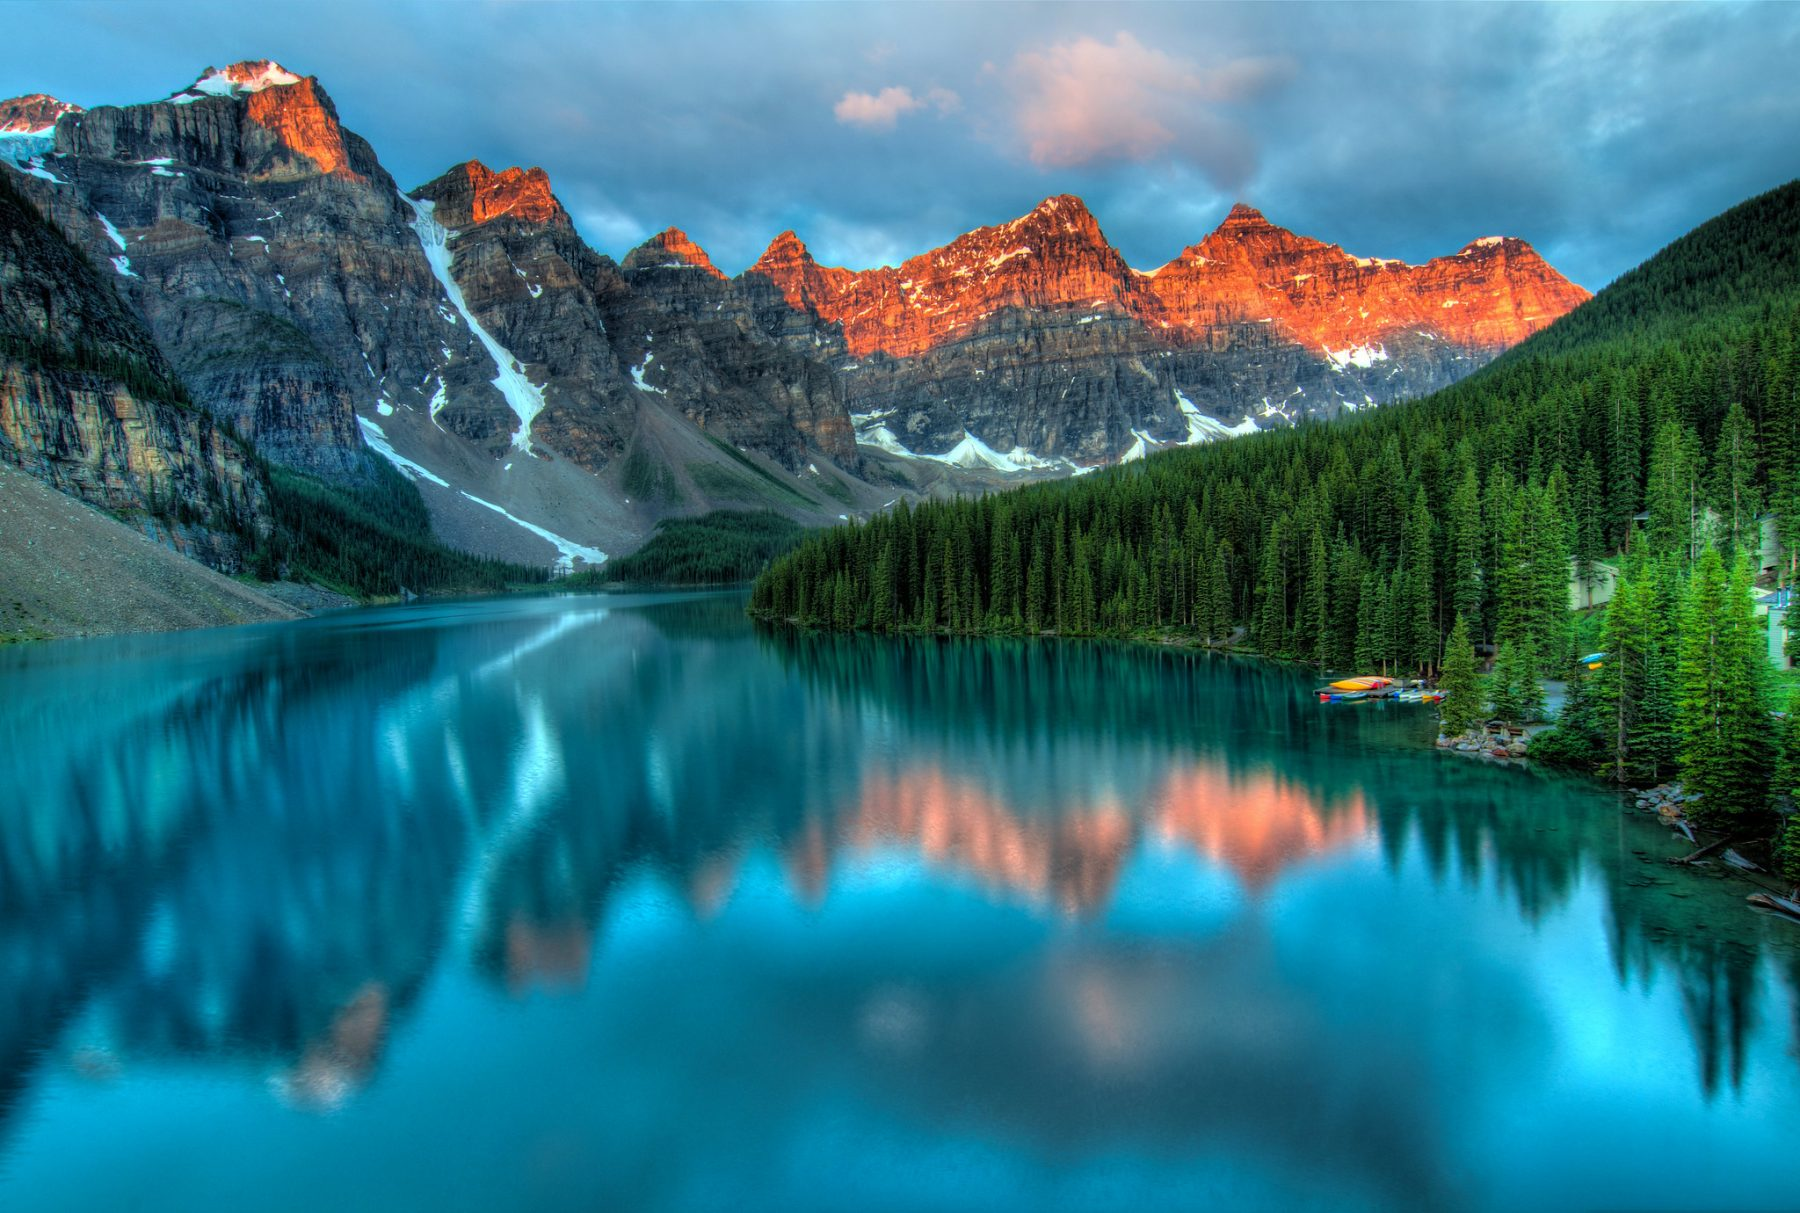 Moraine Lake Sunrise - James Wheeler